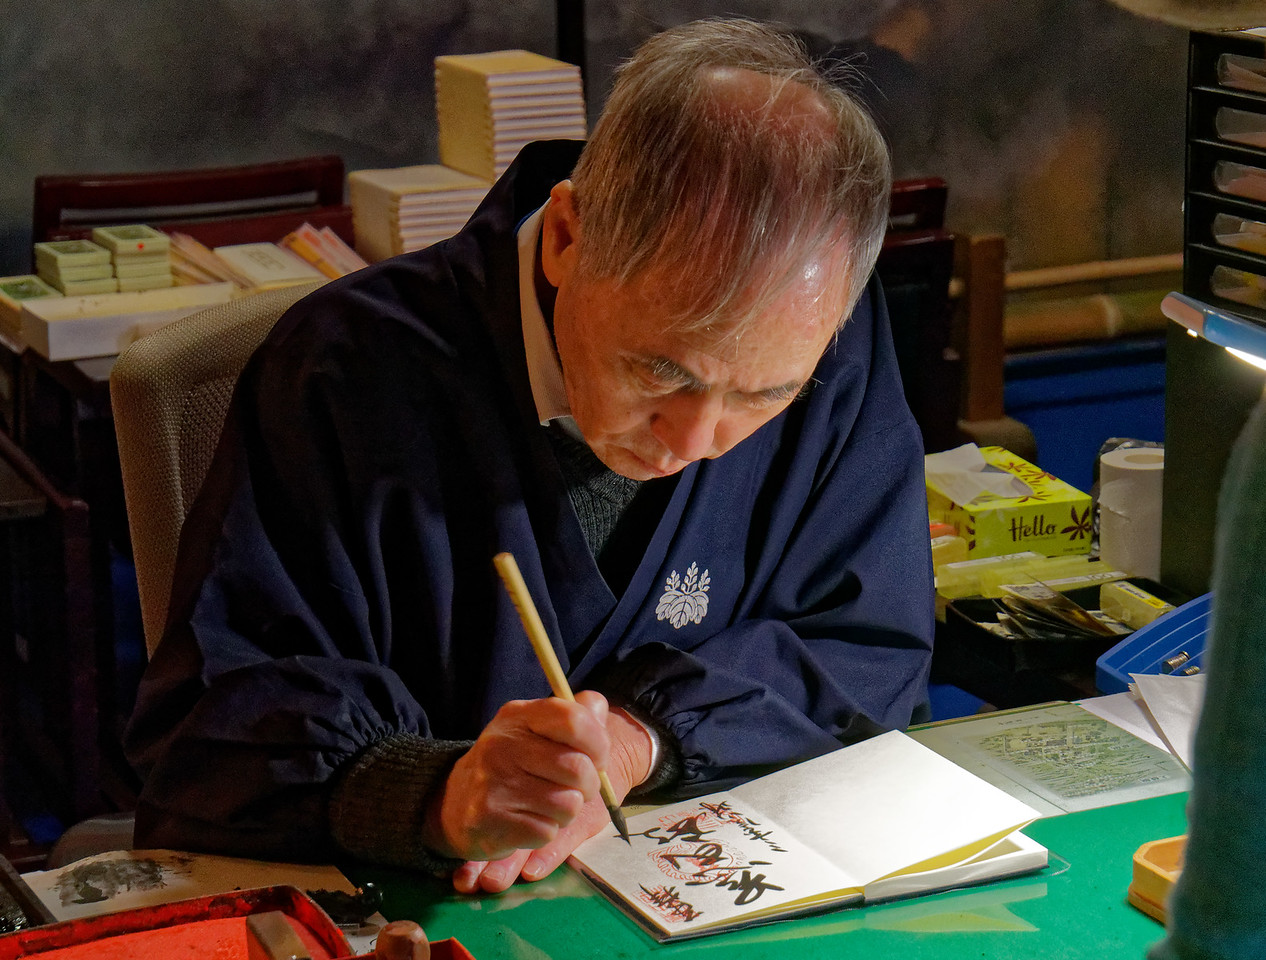 This monk was creating a calligraphic inscription in the book for a visitor.